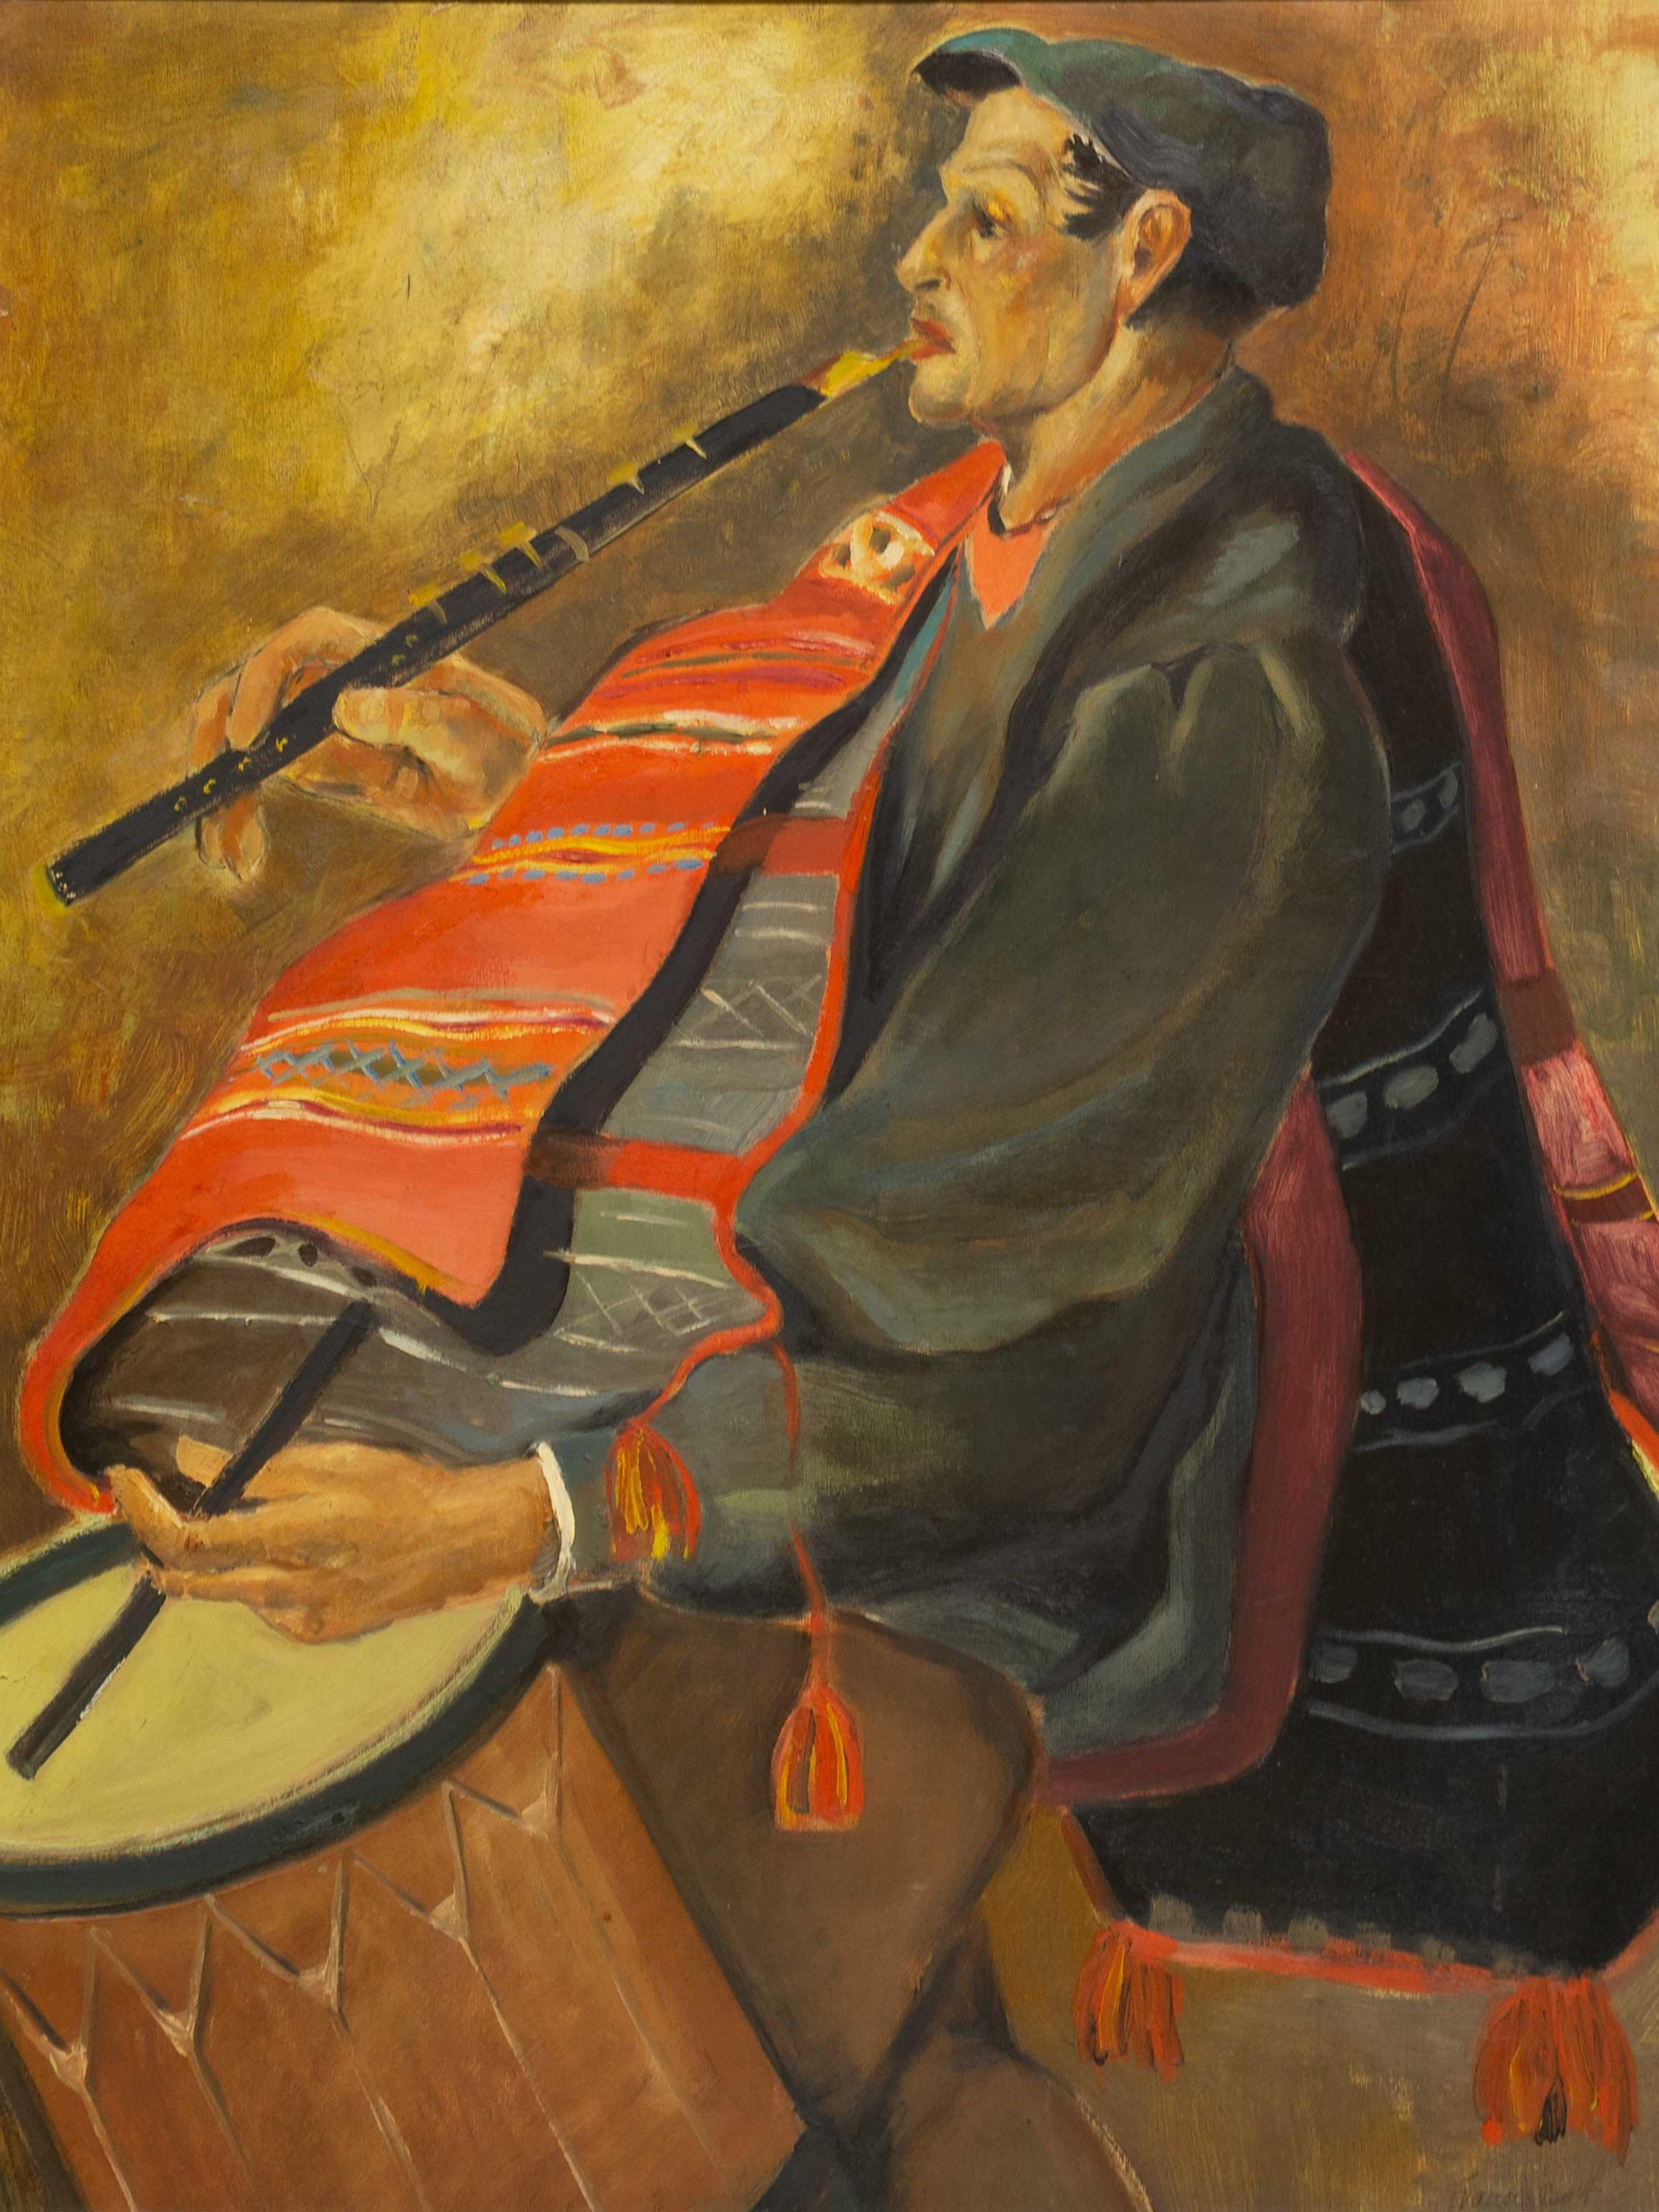 Attributed to Francis Bott (German 1904 - 1998) Oil, Portrait of a Musician, Signed, 58 x 47